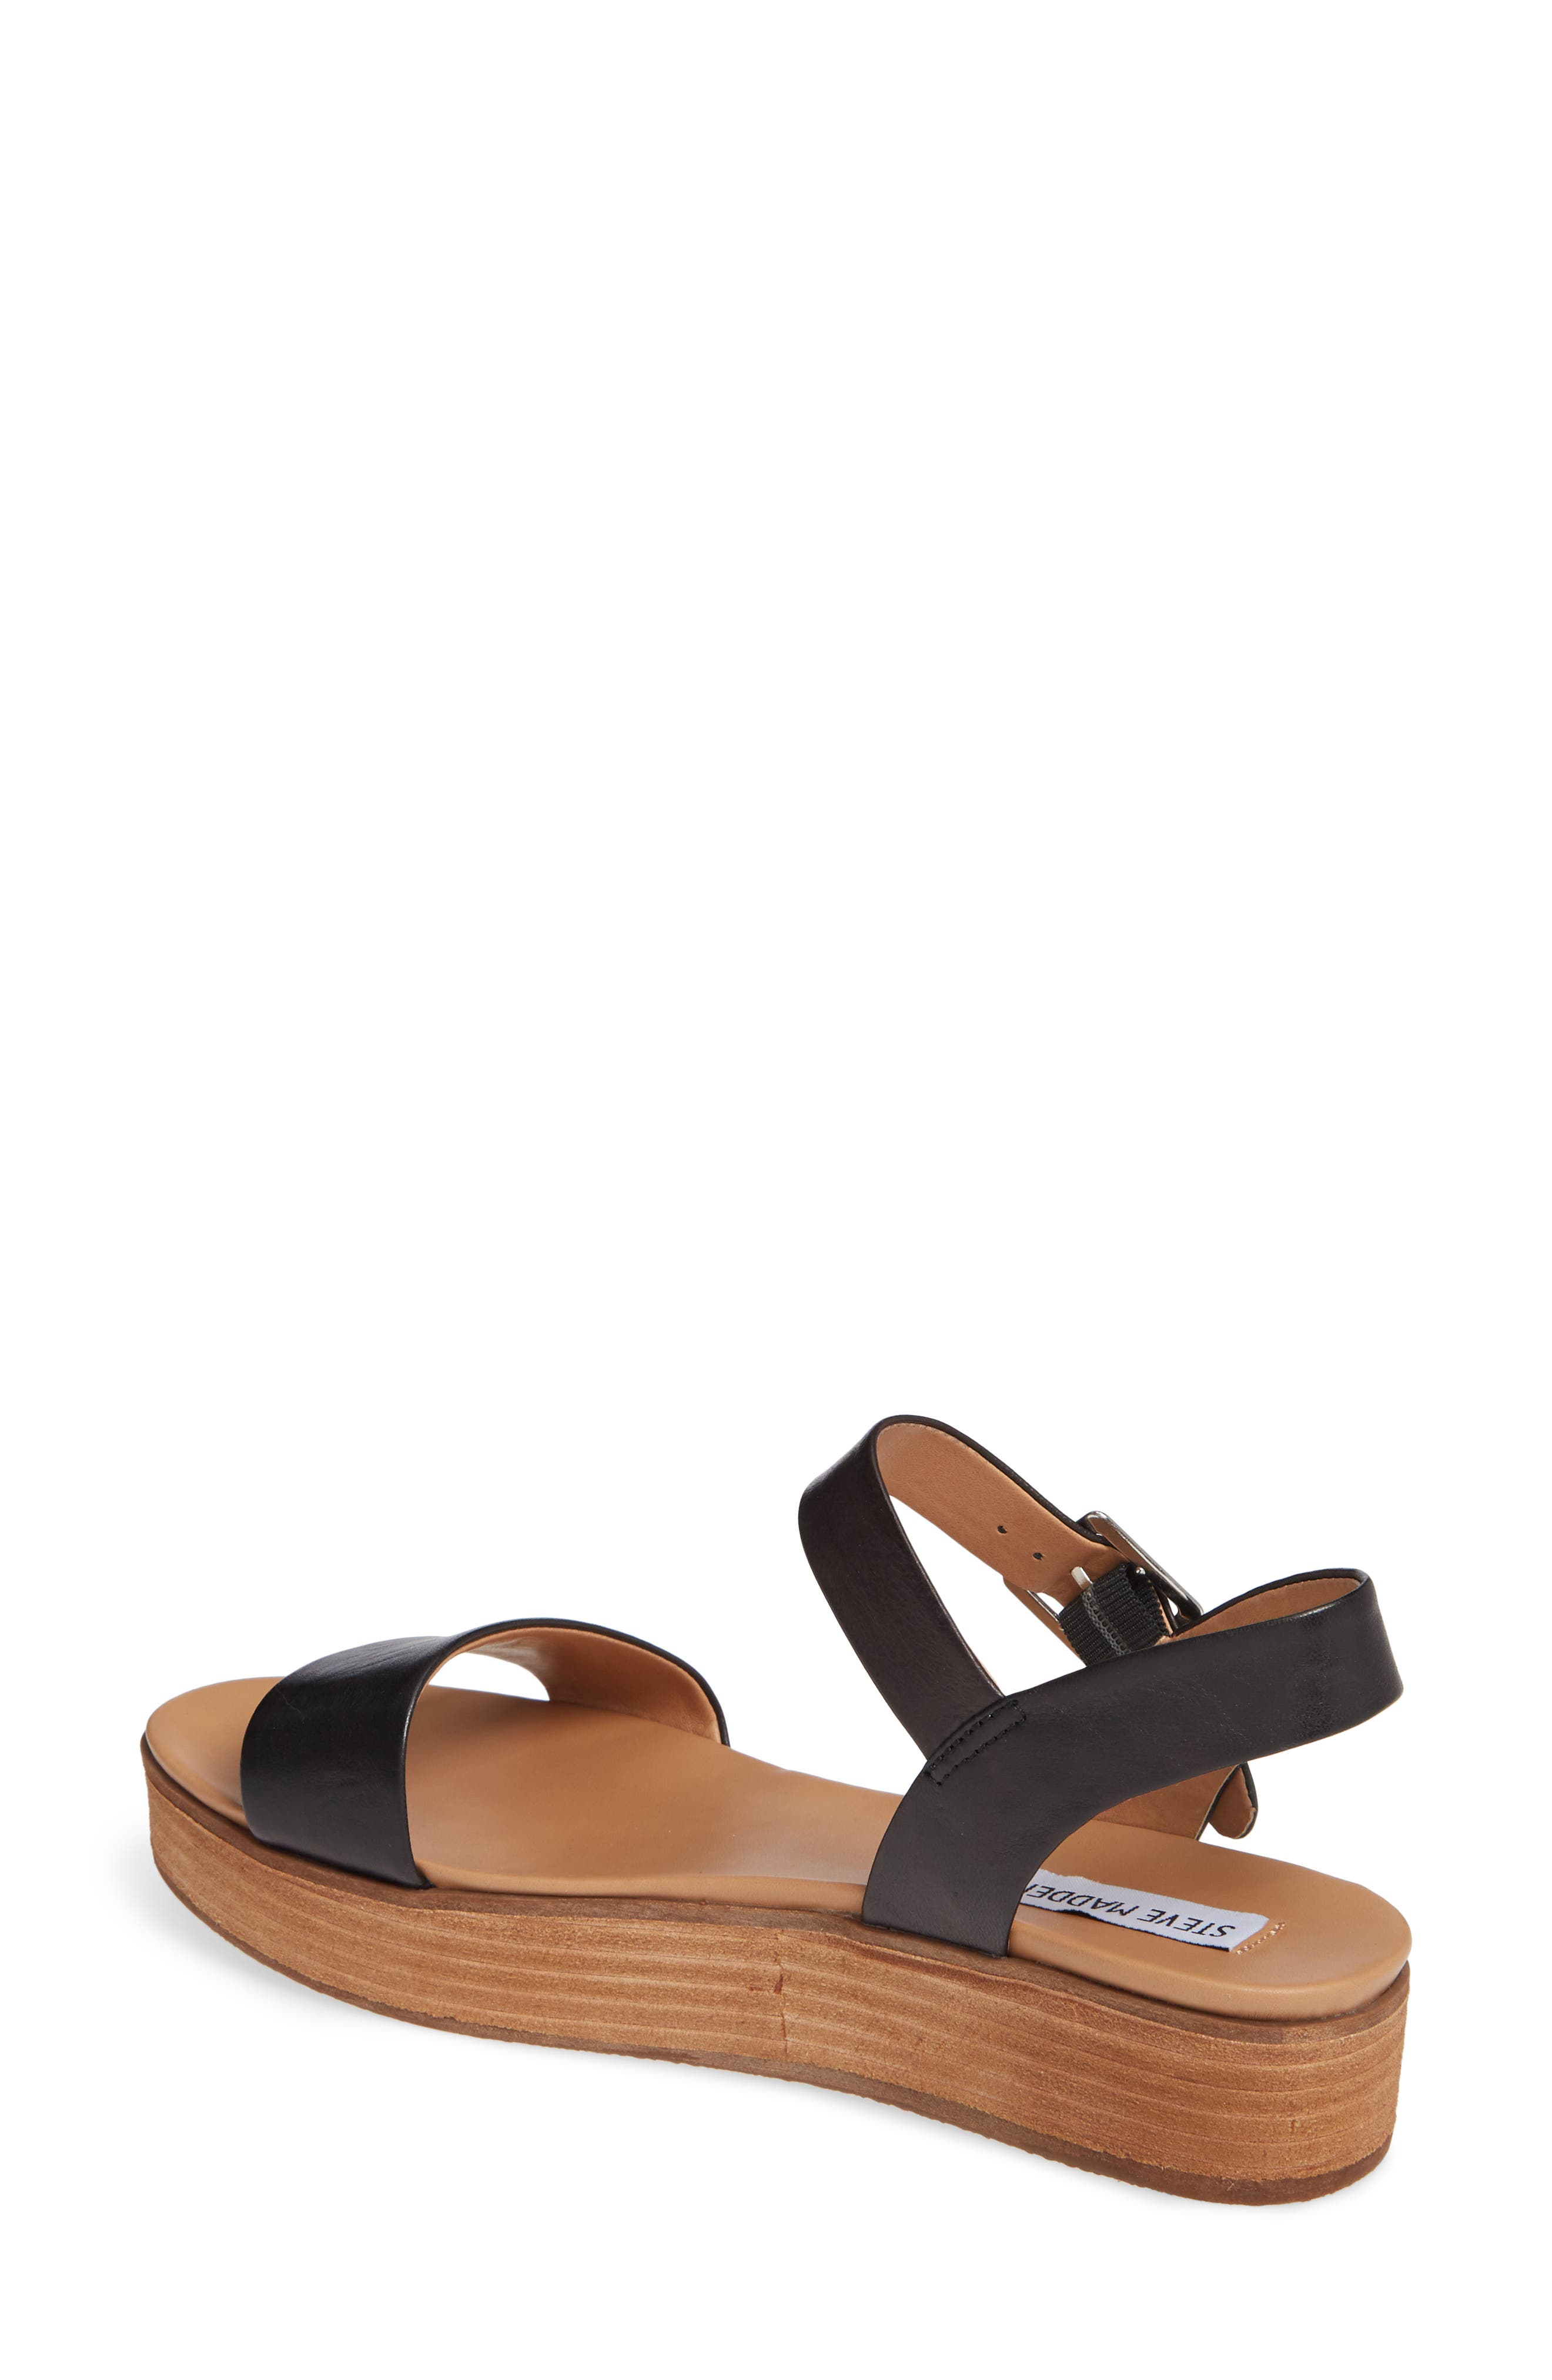 Aida Platform Sandal,                             Alternate thumbnail 2, color,                             BLACK LEATHER